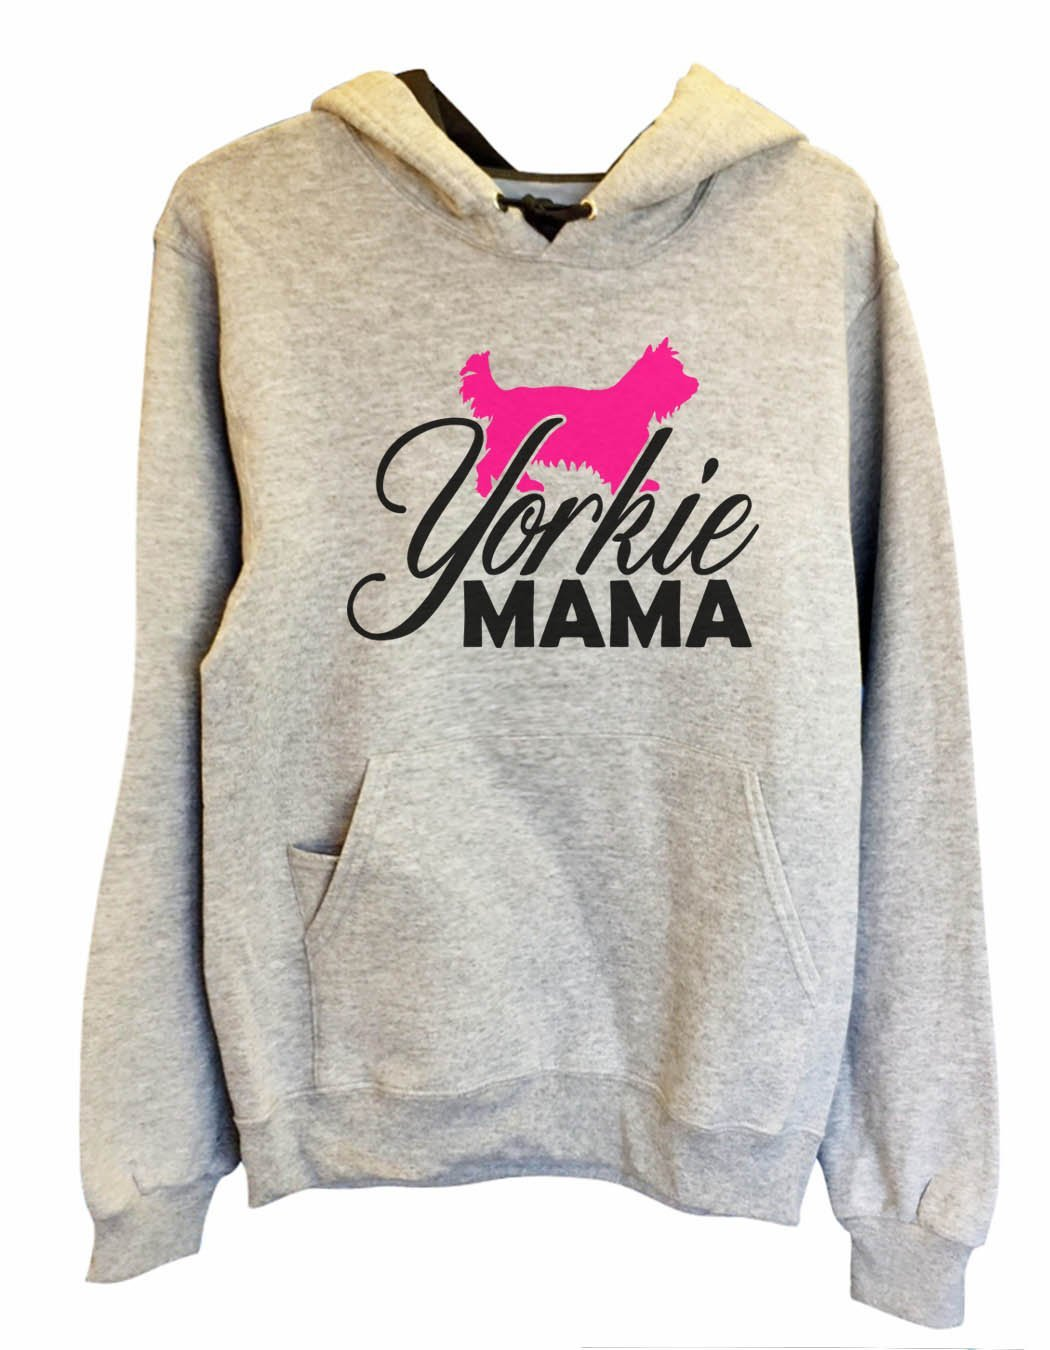 UNISEX HOODIE - Yorkie Mama - FUNNY MENS AND WOMENS HOODED SWEATSHIRTS - 2181 Funny Shirt Small / Heather Grey